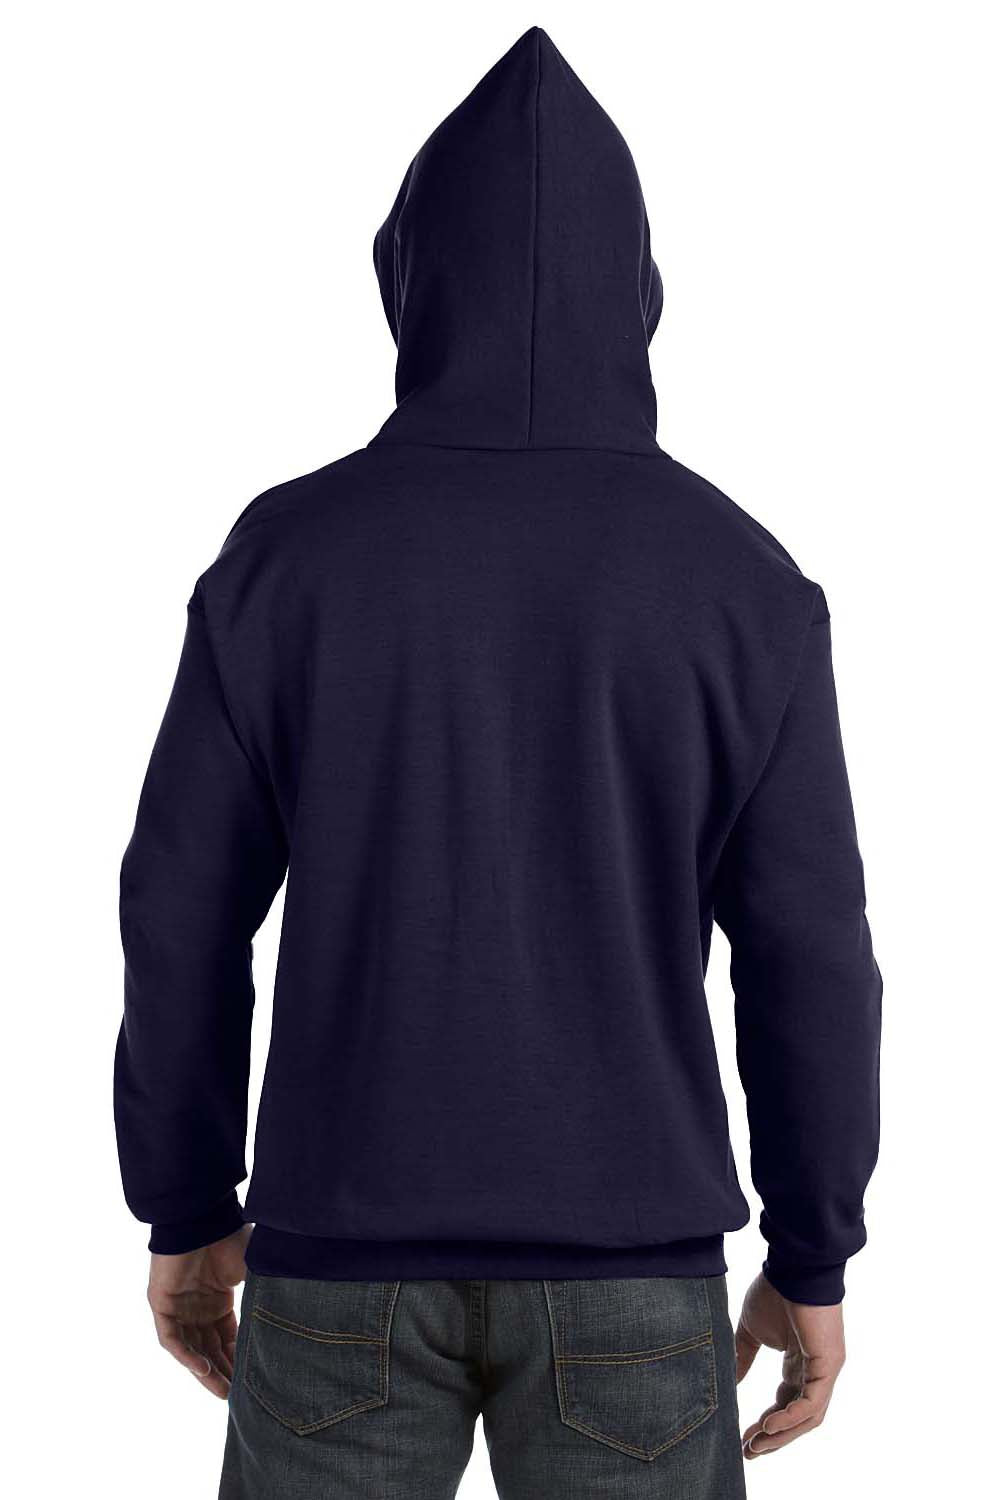 Hanes P170 Mens EcoSmart Print Pro XP Hooded Sweatshirt Hoodie Navy Blue Back